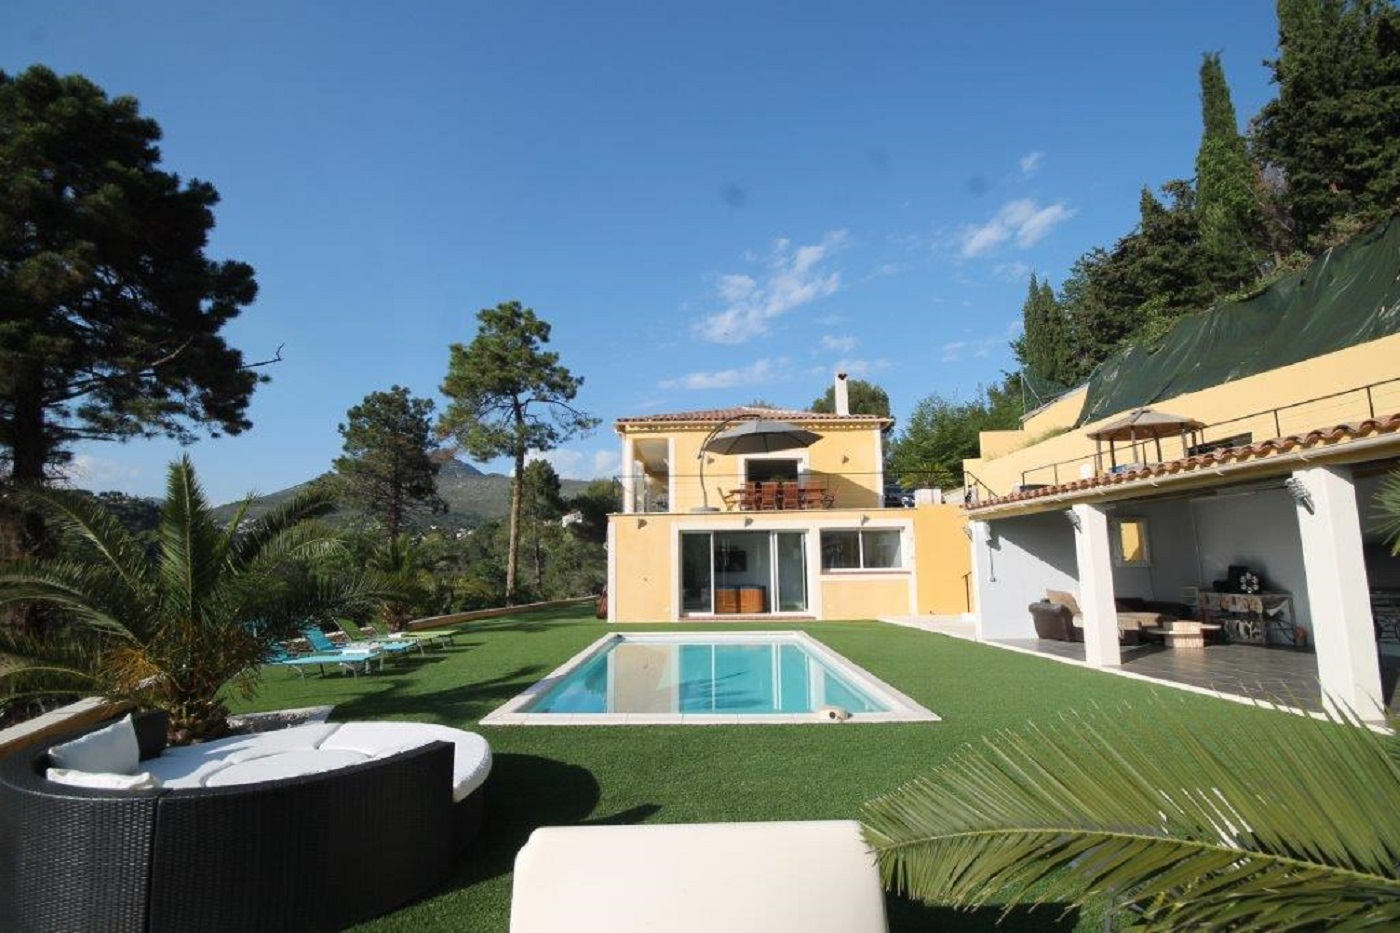 Nice Holiday Rental, villa, 8 people, AL081 - Photo